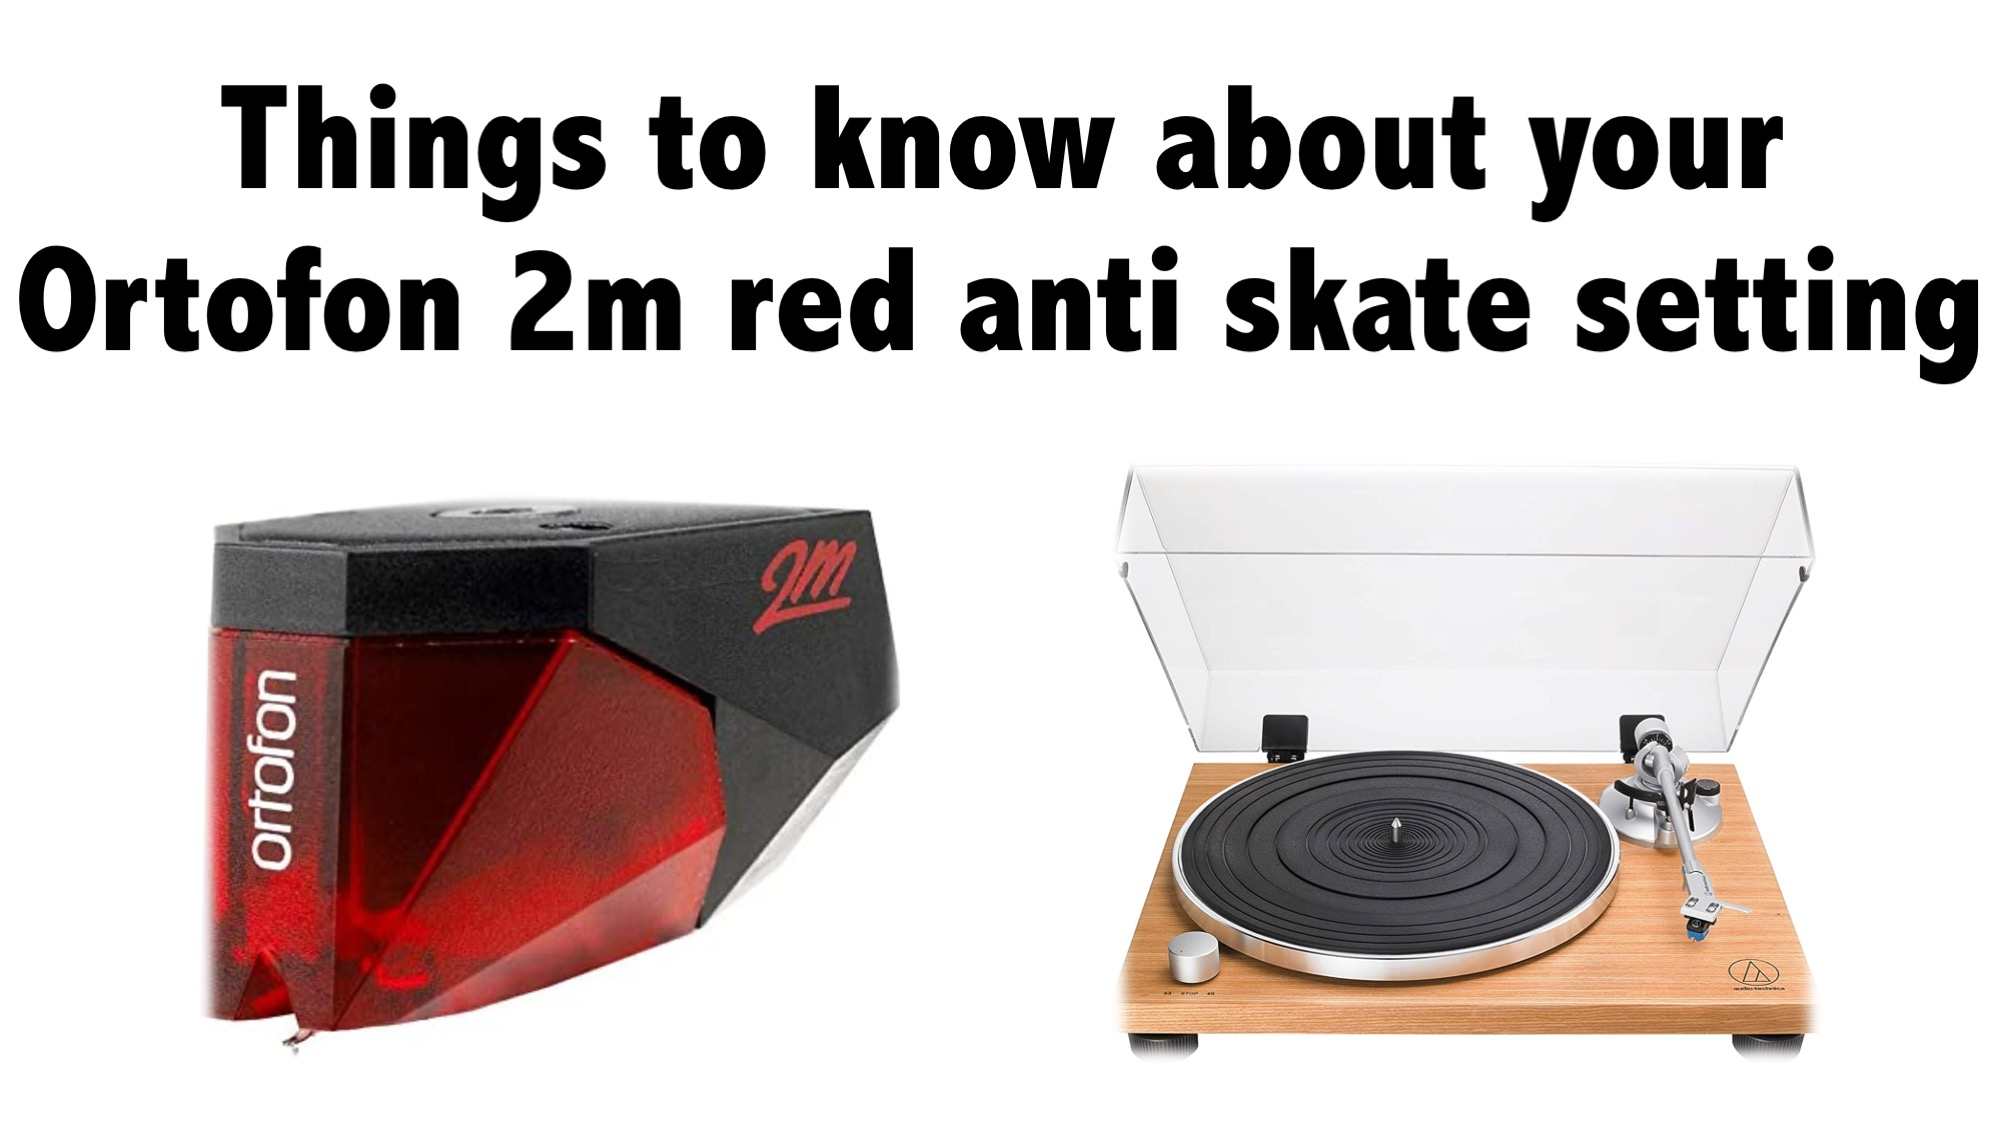 Things to know about your Ortofon 2m red anti skate setting